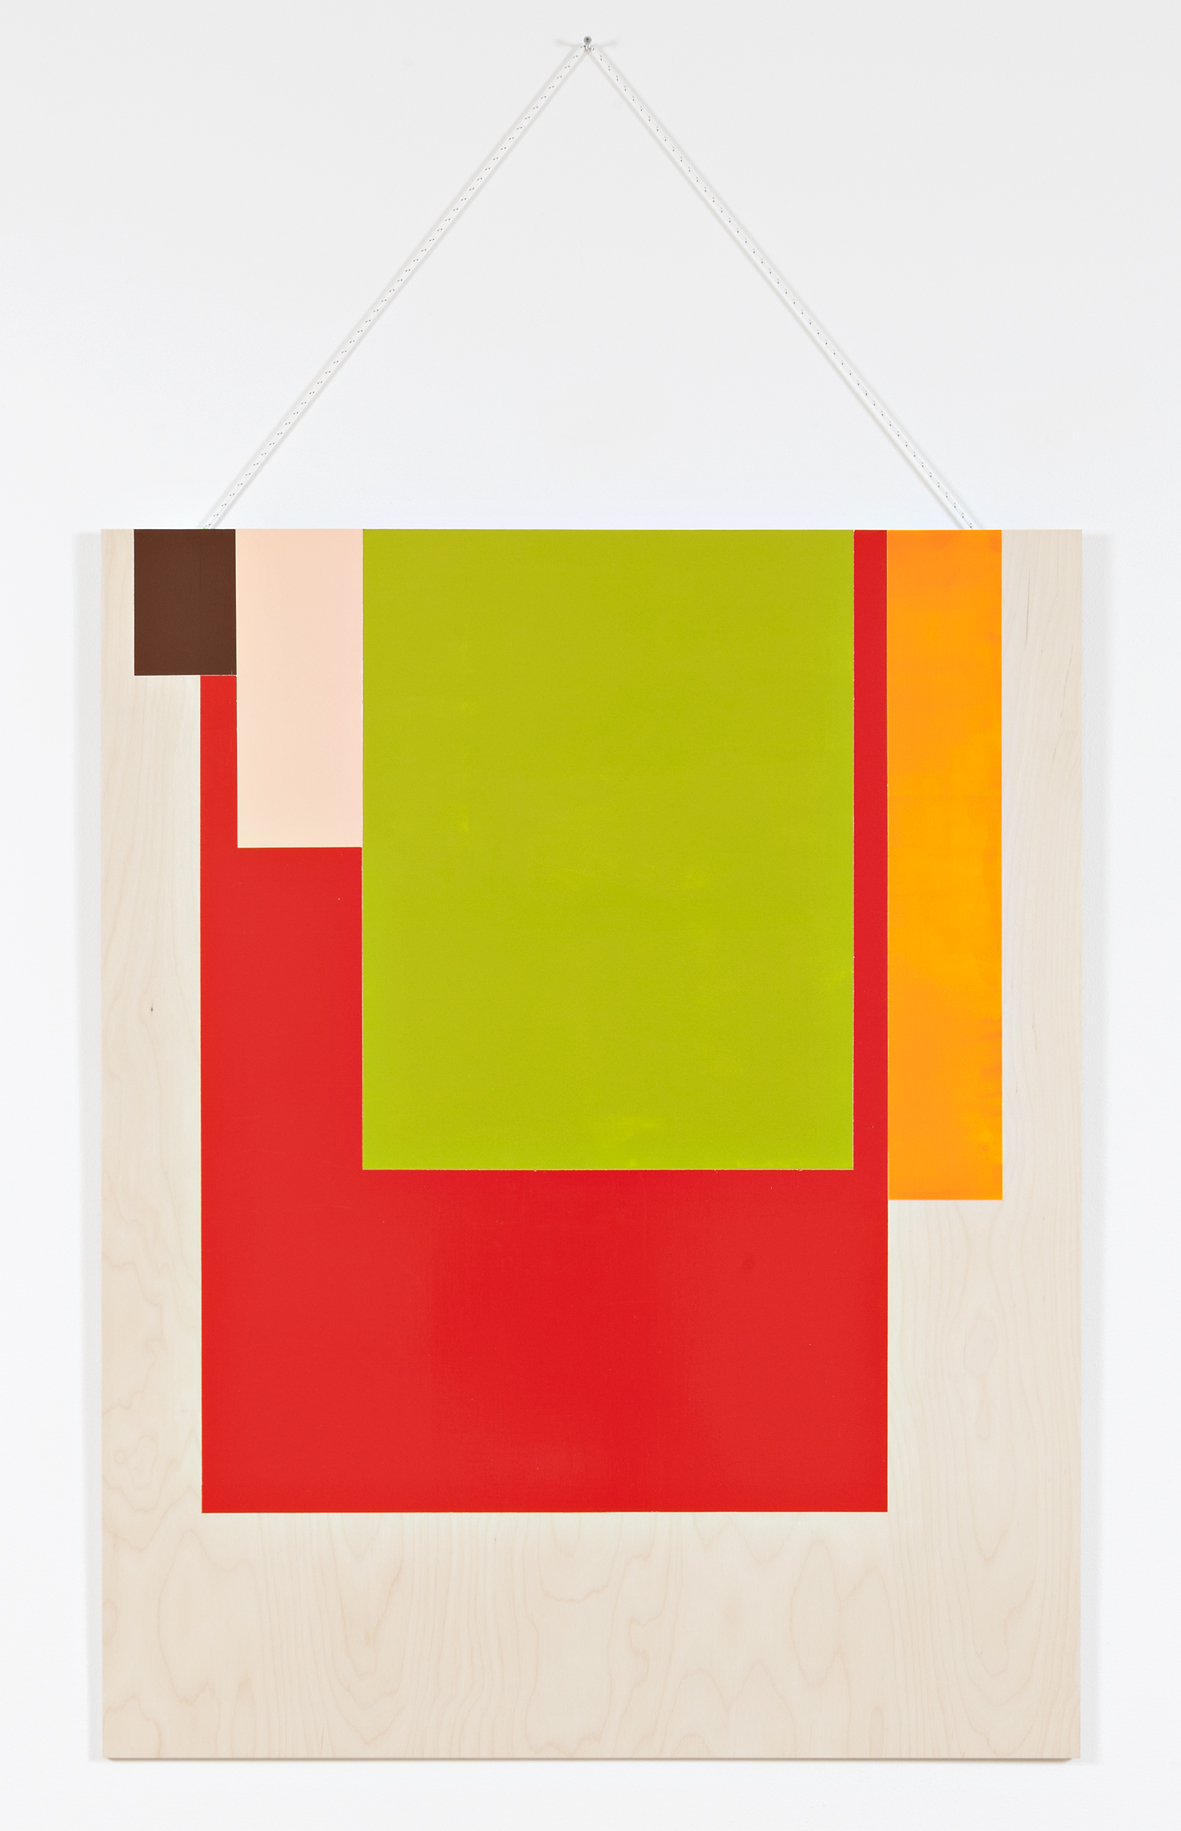 Collected Colors # 1 . 2015. Acrylic and wax on birch plywood. 125 x 100 cm.